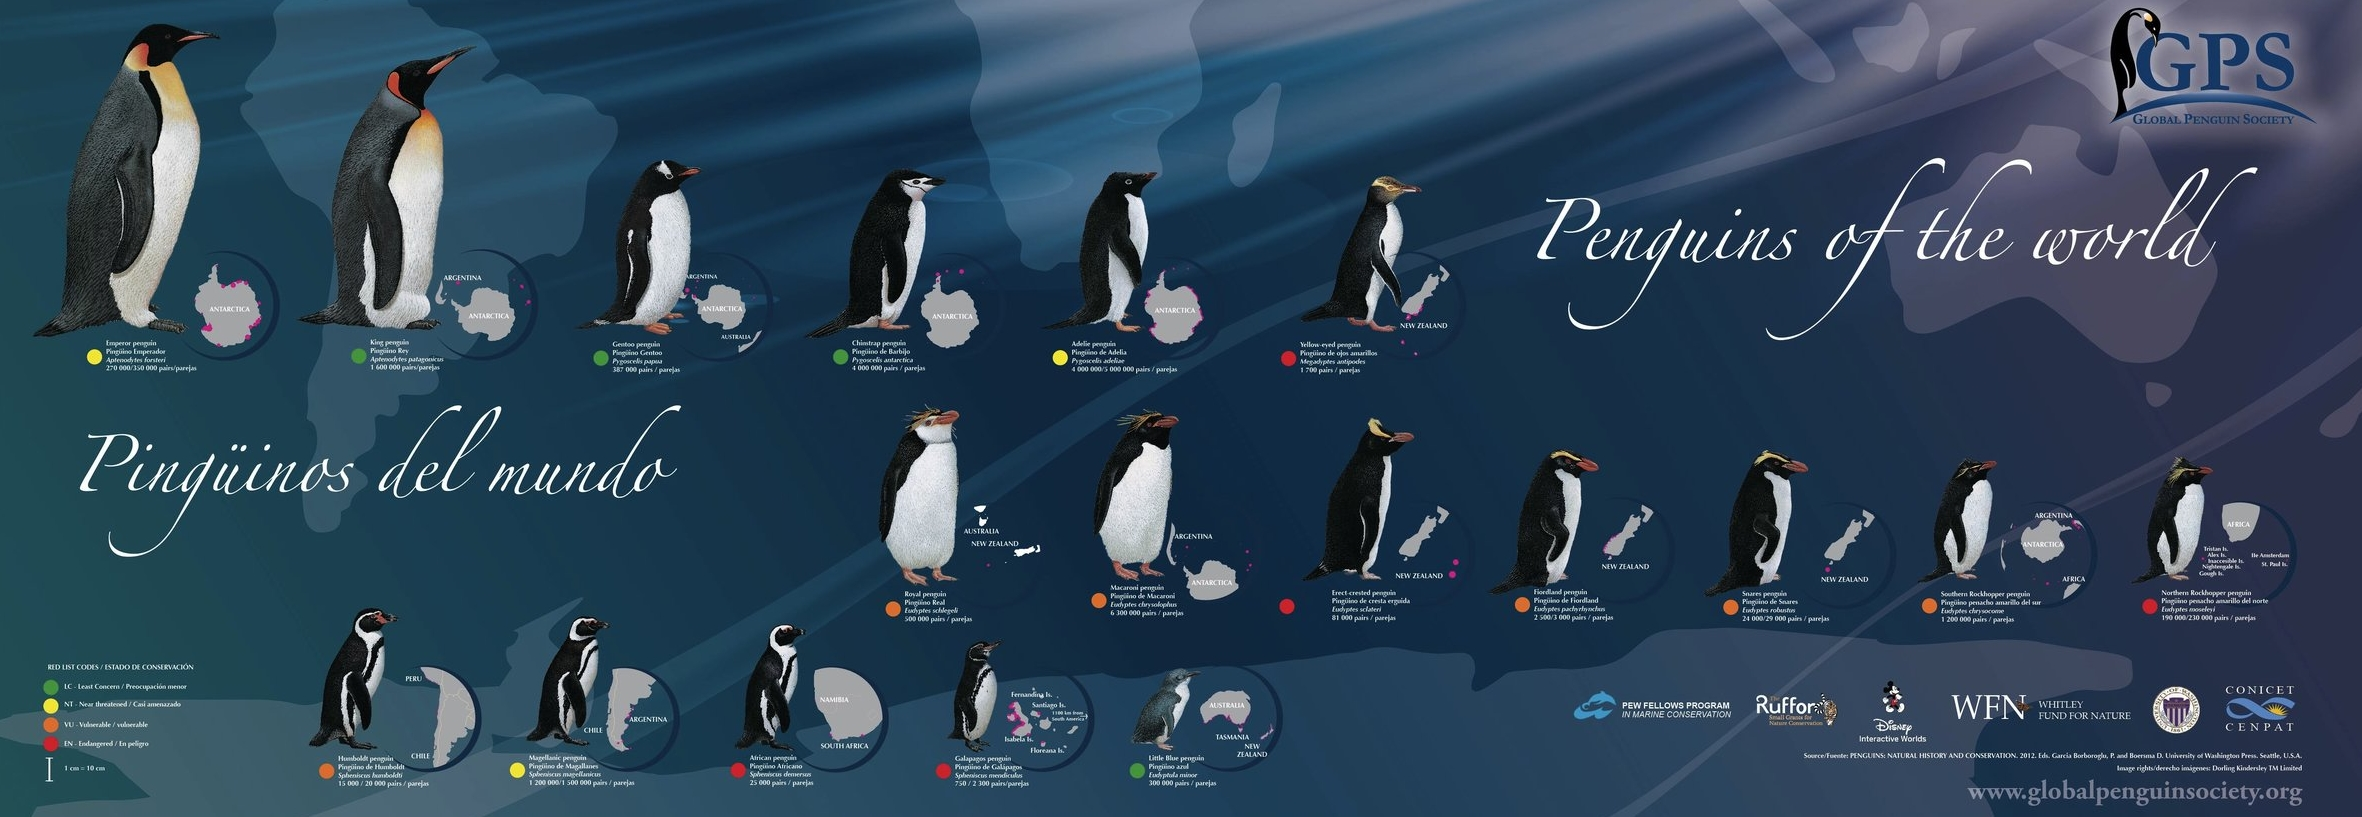 Poster penguins of the world GPS.jpg